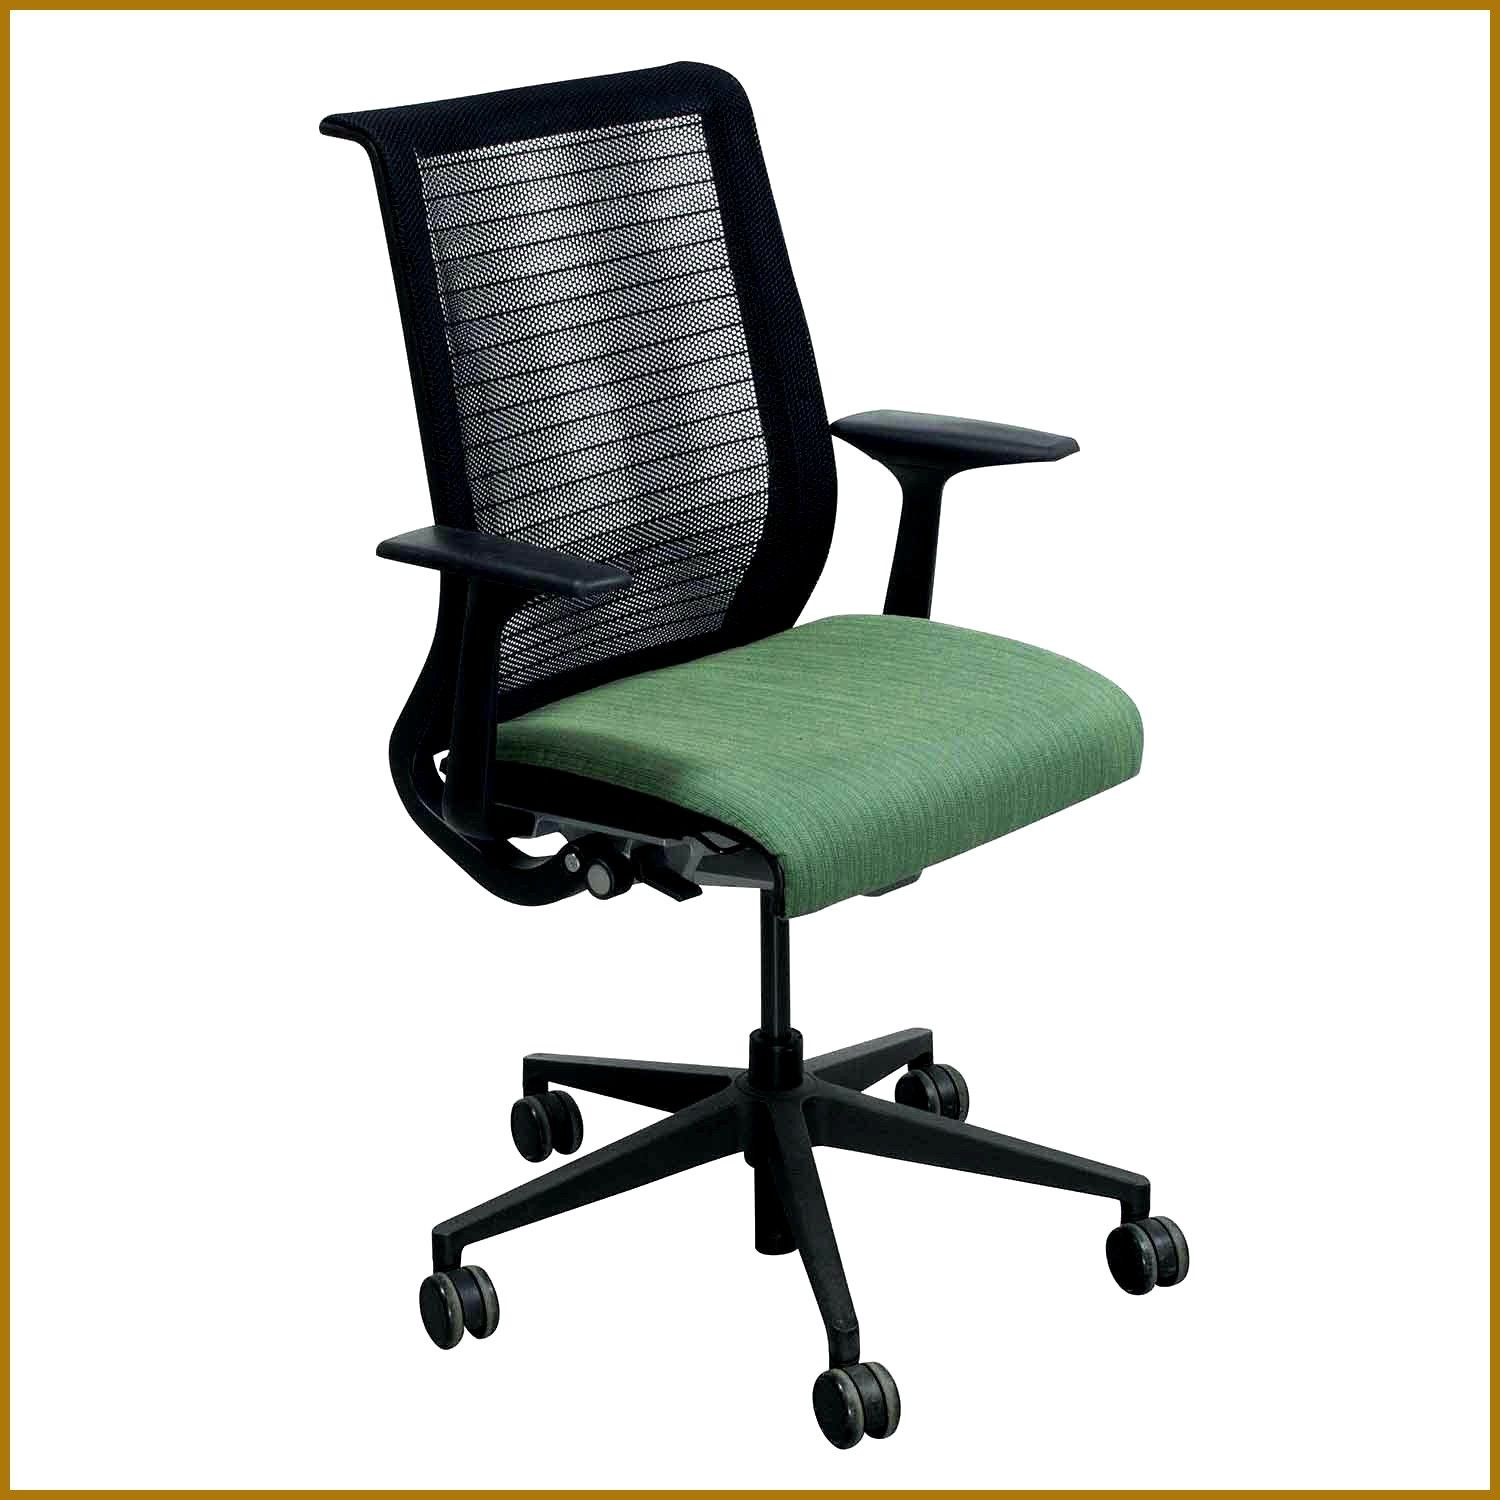 via office chairs. Via Office Chairs - Expensive Home Furniture Check More At Http://www I